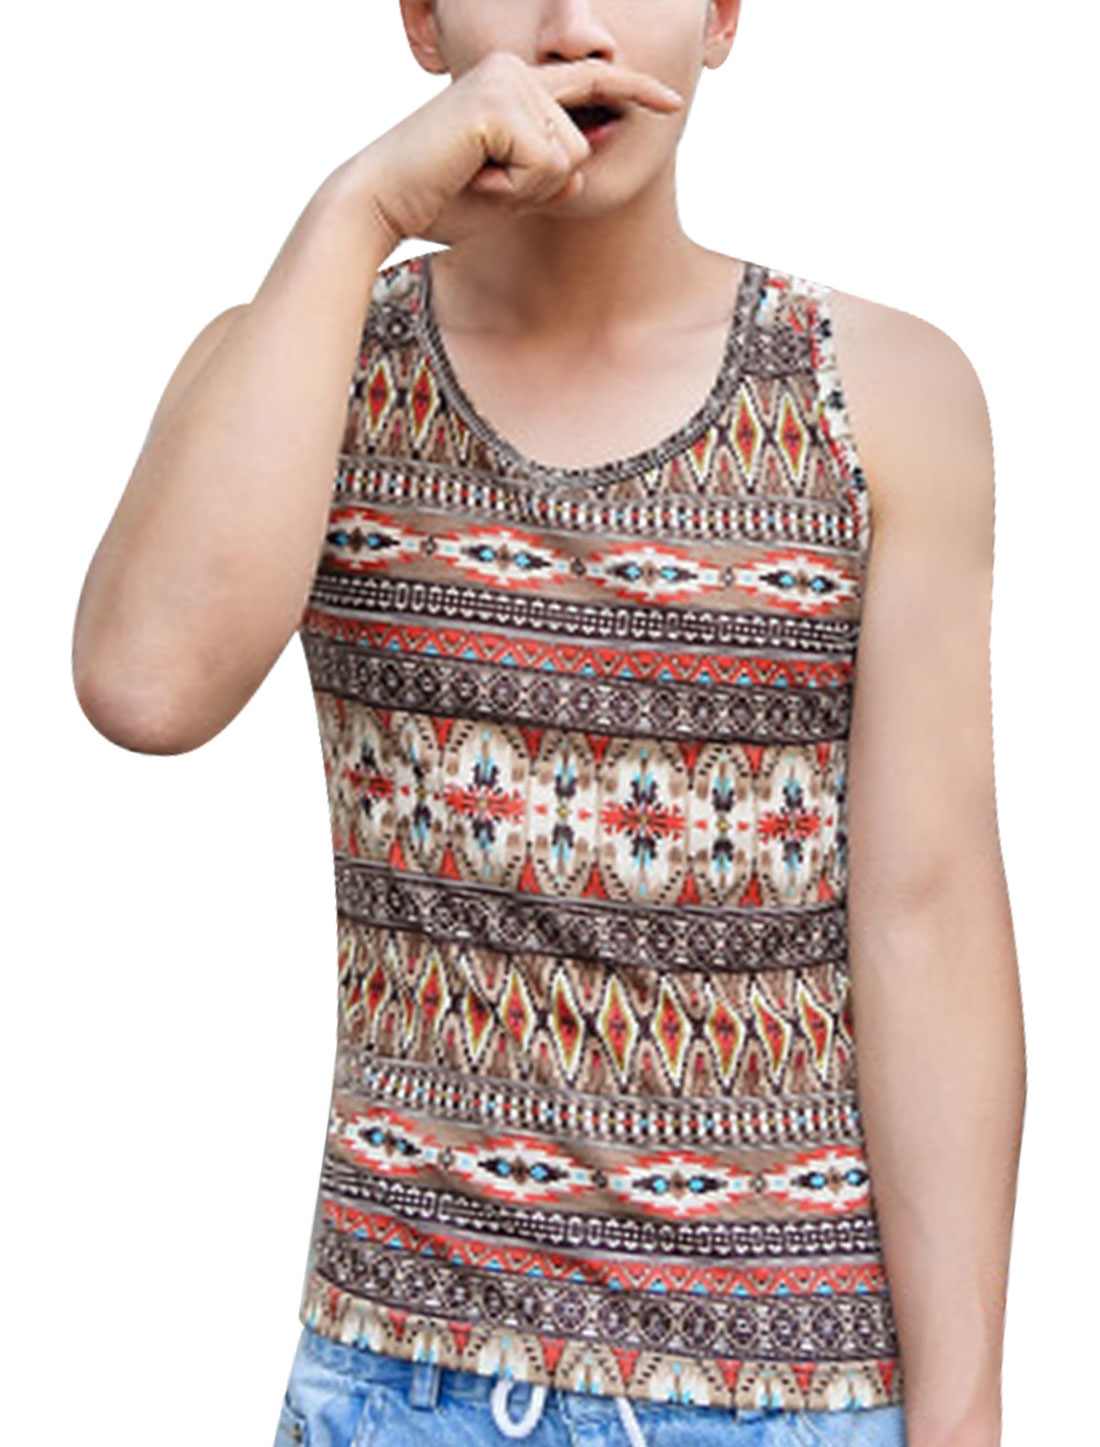 Man's Round Neck Sleeveless Geometric Prints Tank Top Brown M